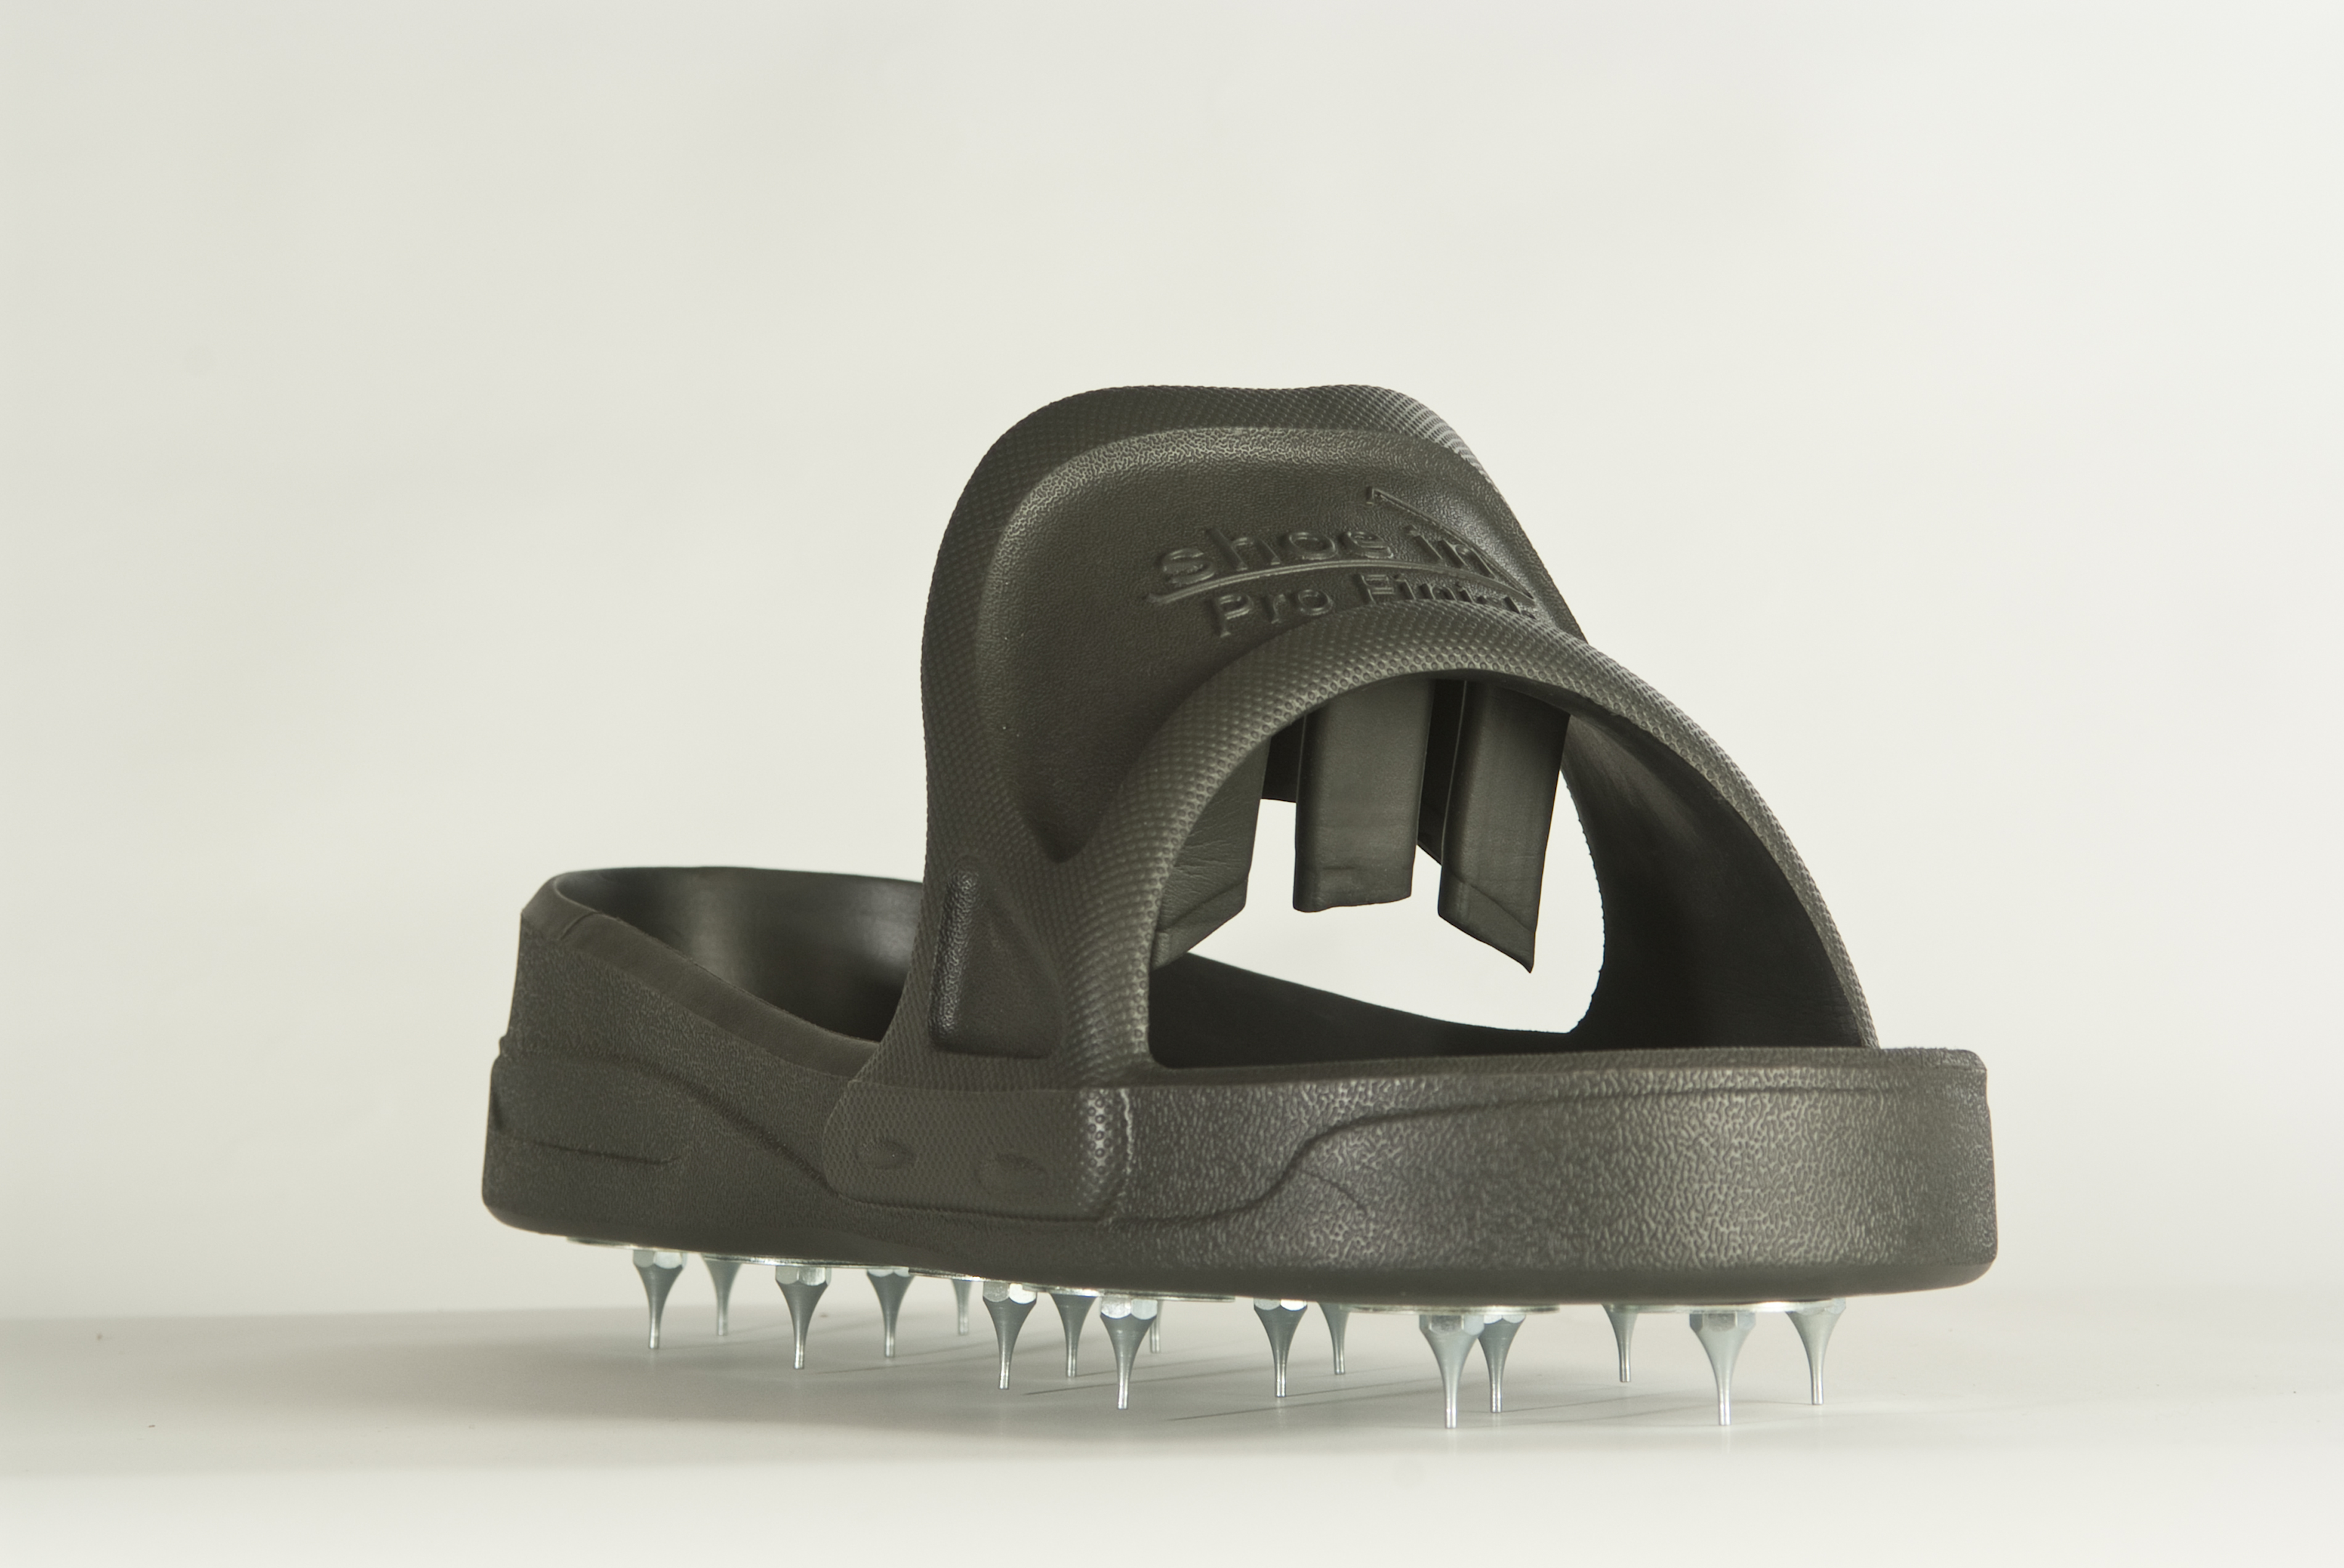 Shoe In Pro Finish Spike Shoes Concrete Texturing Com